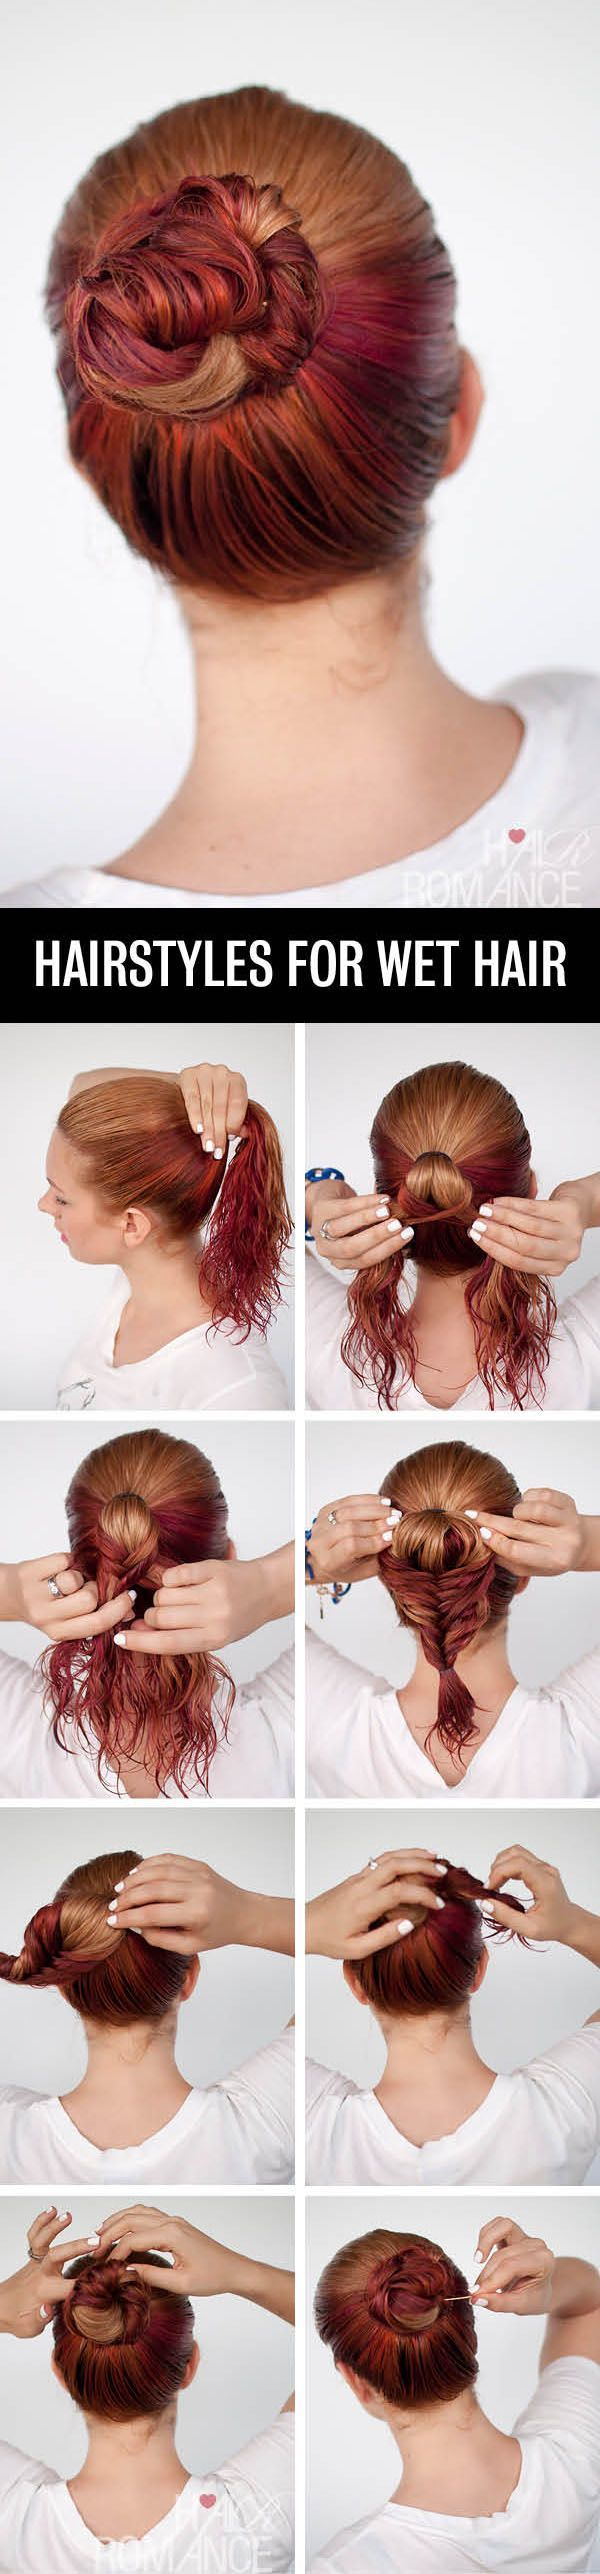 Swell 1000 Ideas About Wet Hair Hairstyles On Pinterest Wet Hairstyles For Men Maxibearus